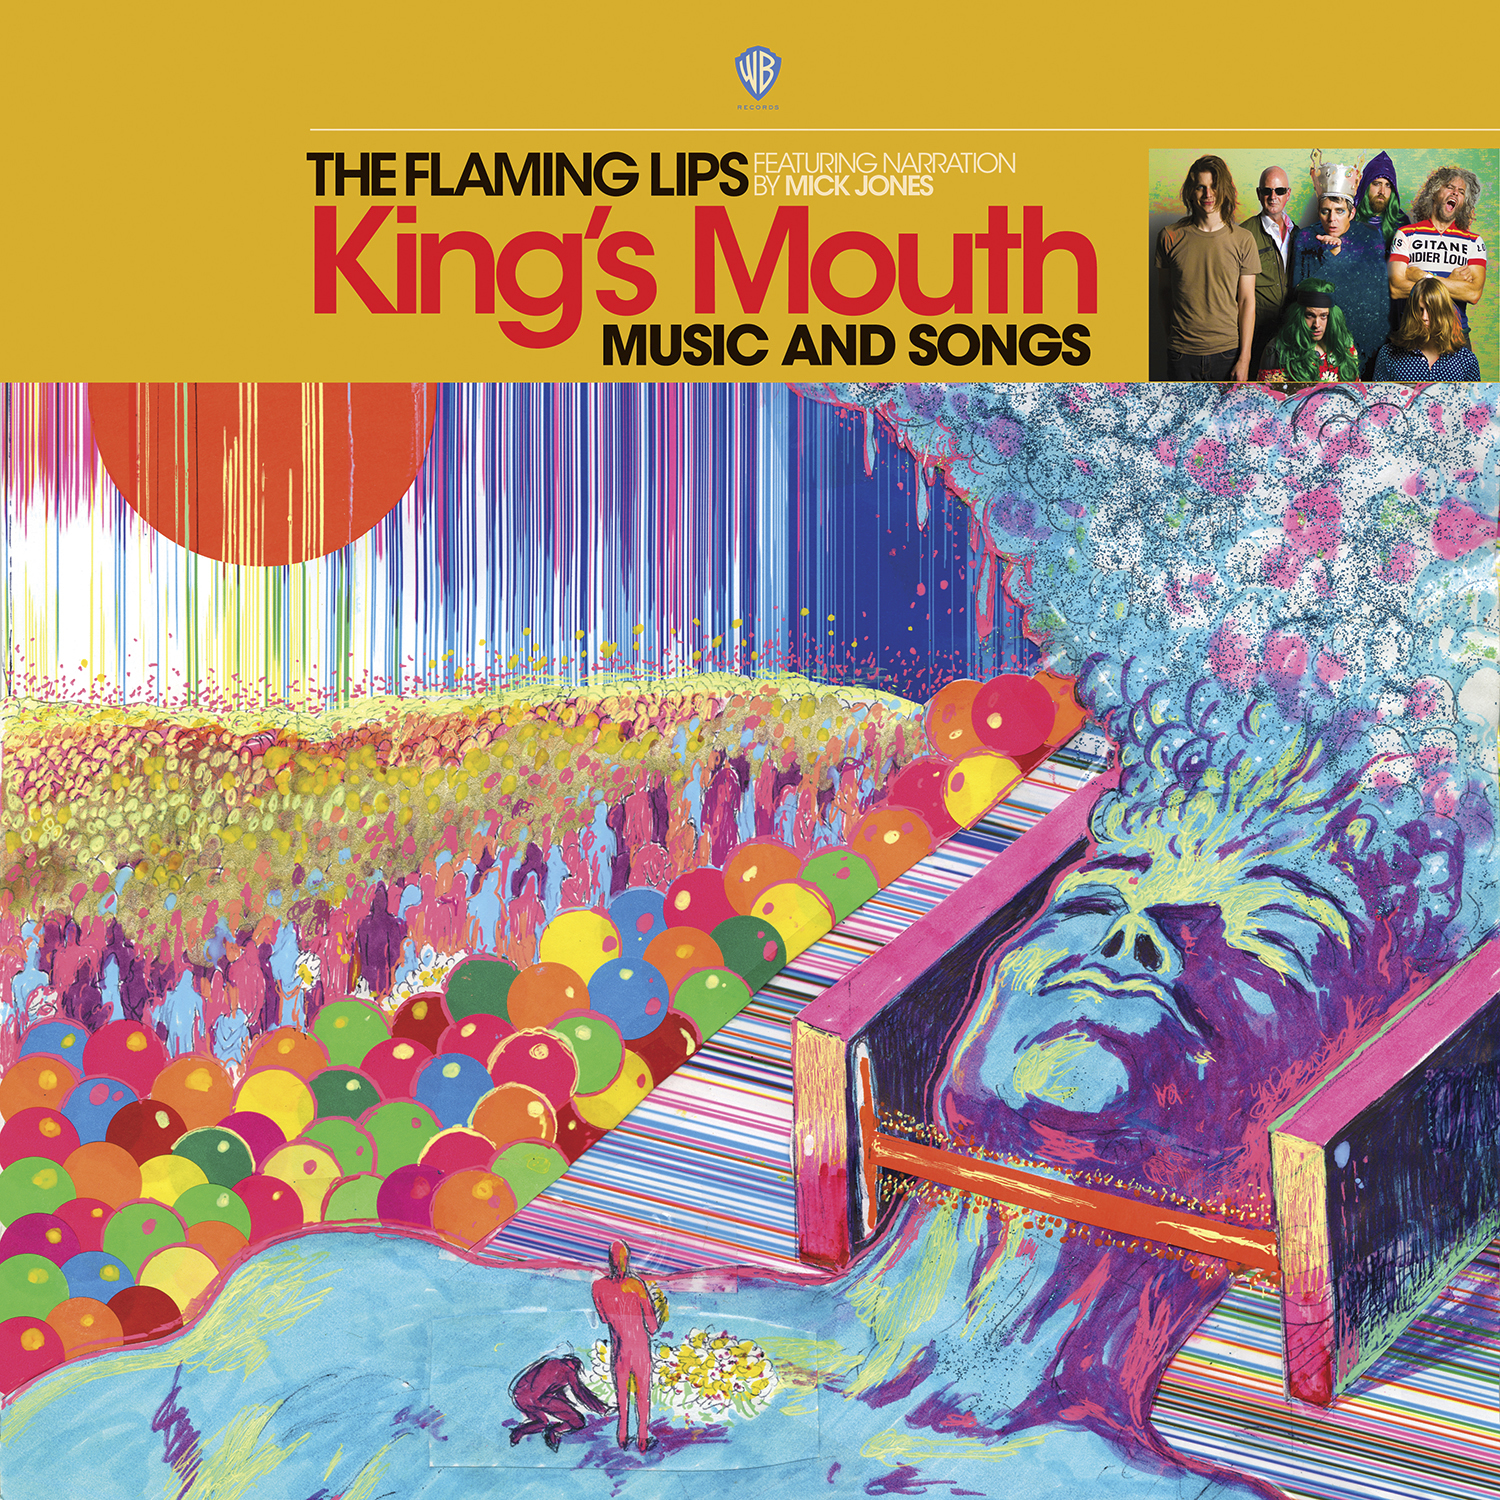 Flaming Lips new track King's Mouth